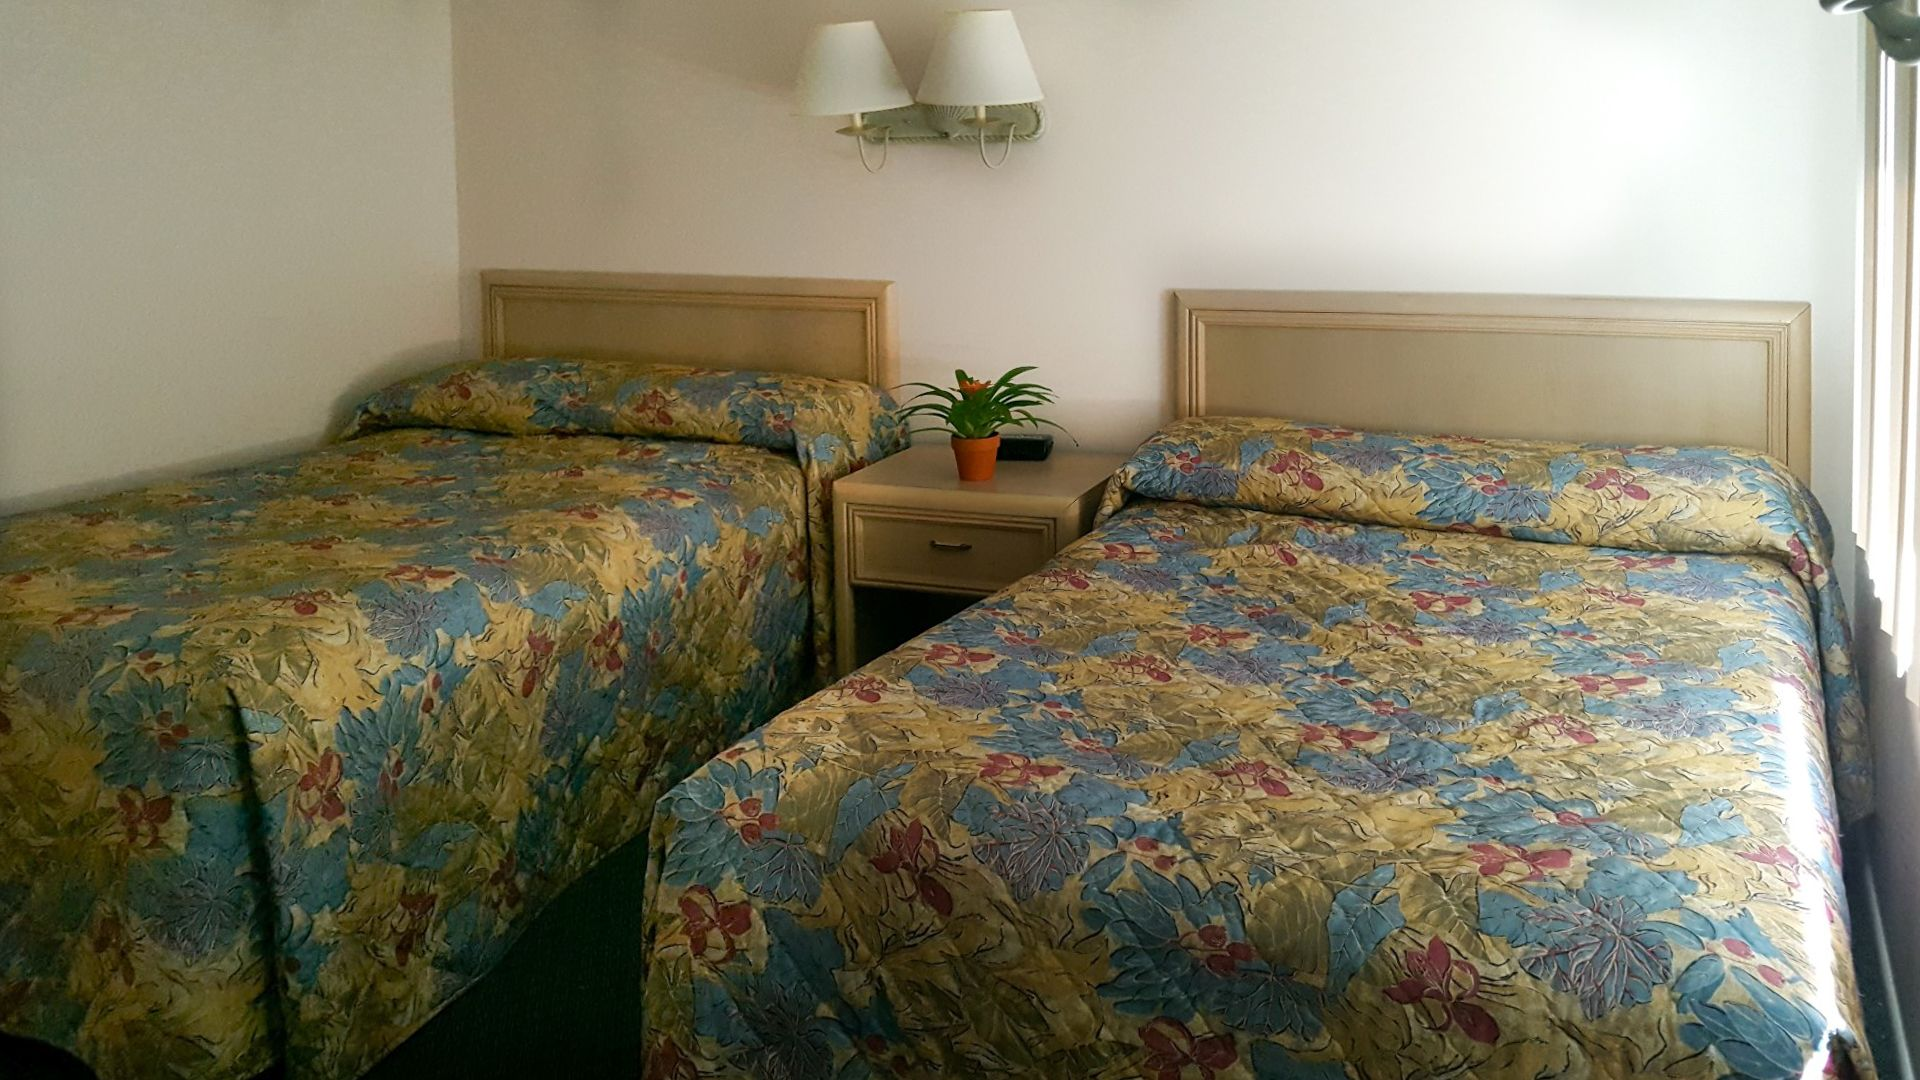 Picture of: Premier Suite With One Bedroom 2 Full Size Double Beds Renovated Kitchen Bath And Living Room With A Queen Size Sofa Bed The Sea Scape Inn